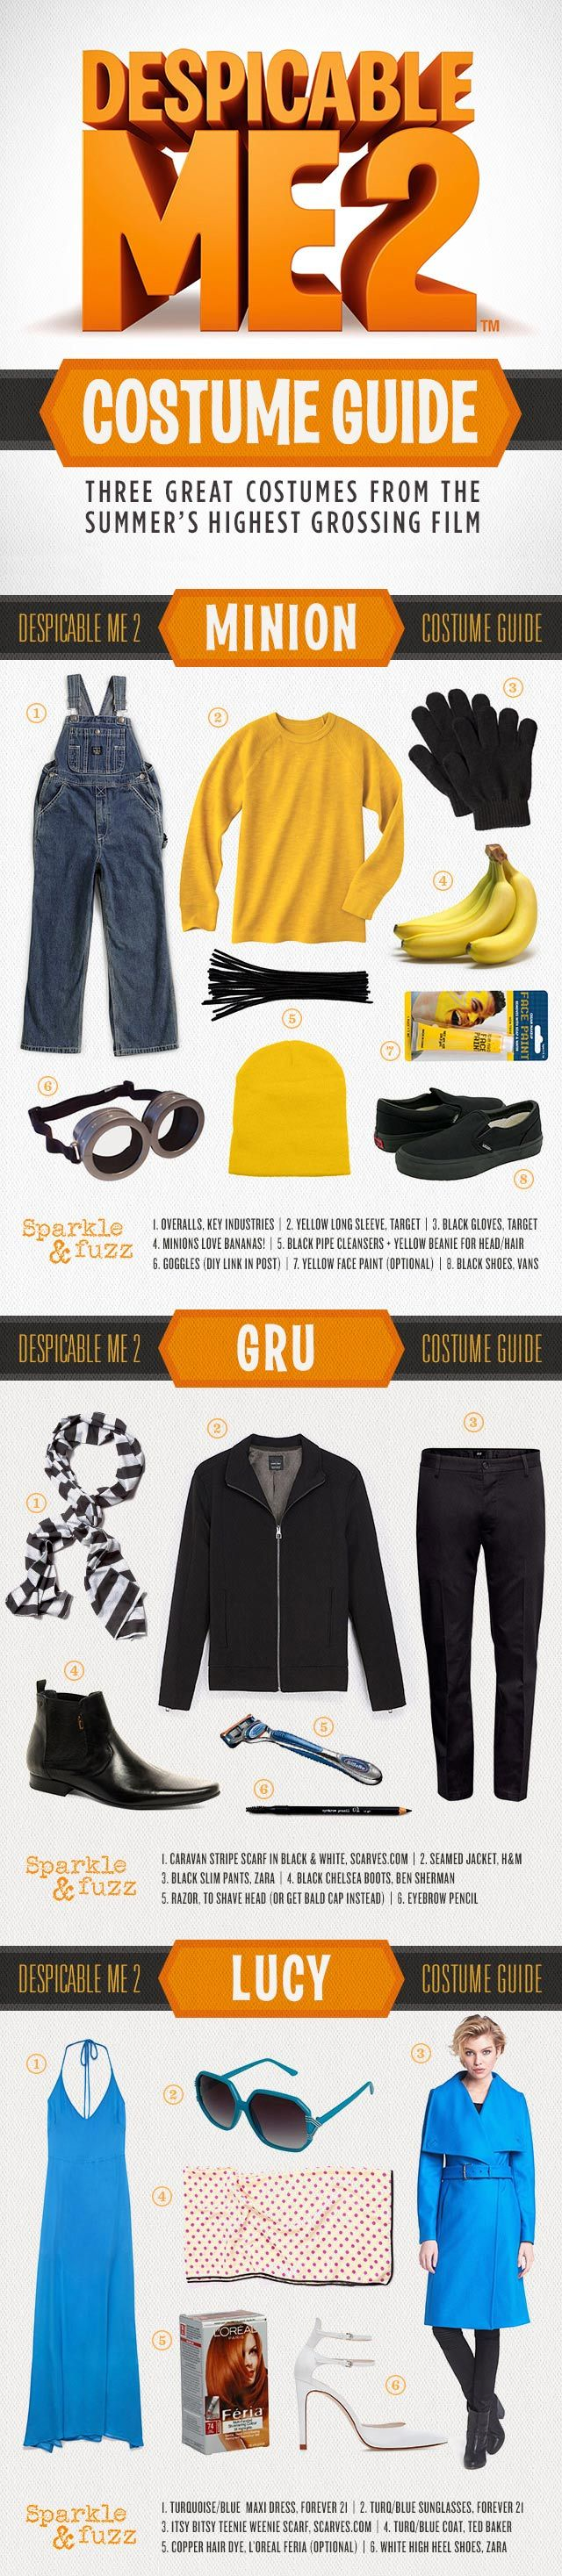 An awesome costume guide for the whole family, Ladies, look fly in this Foxy Lucy Wilde costume, and dress your man as this cool version of Gru! Also check out our easy Minion DIY for the kids! You'll be the most despicable family on the block.